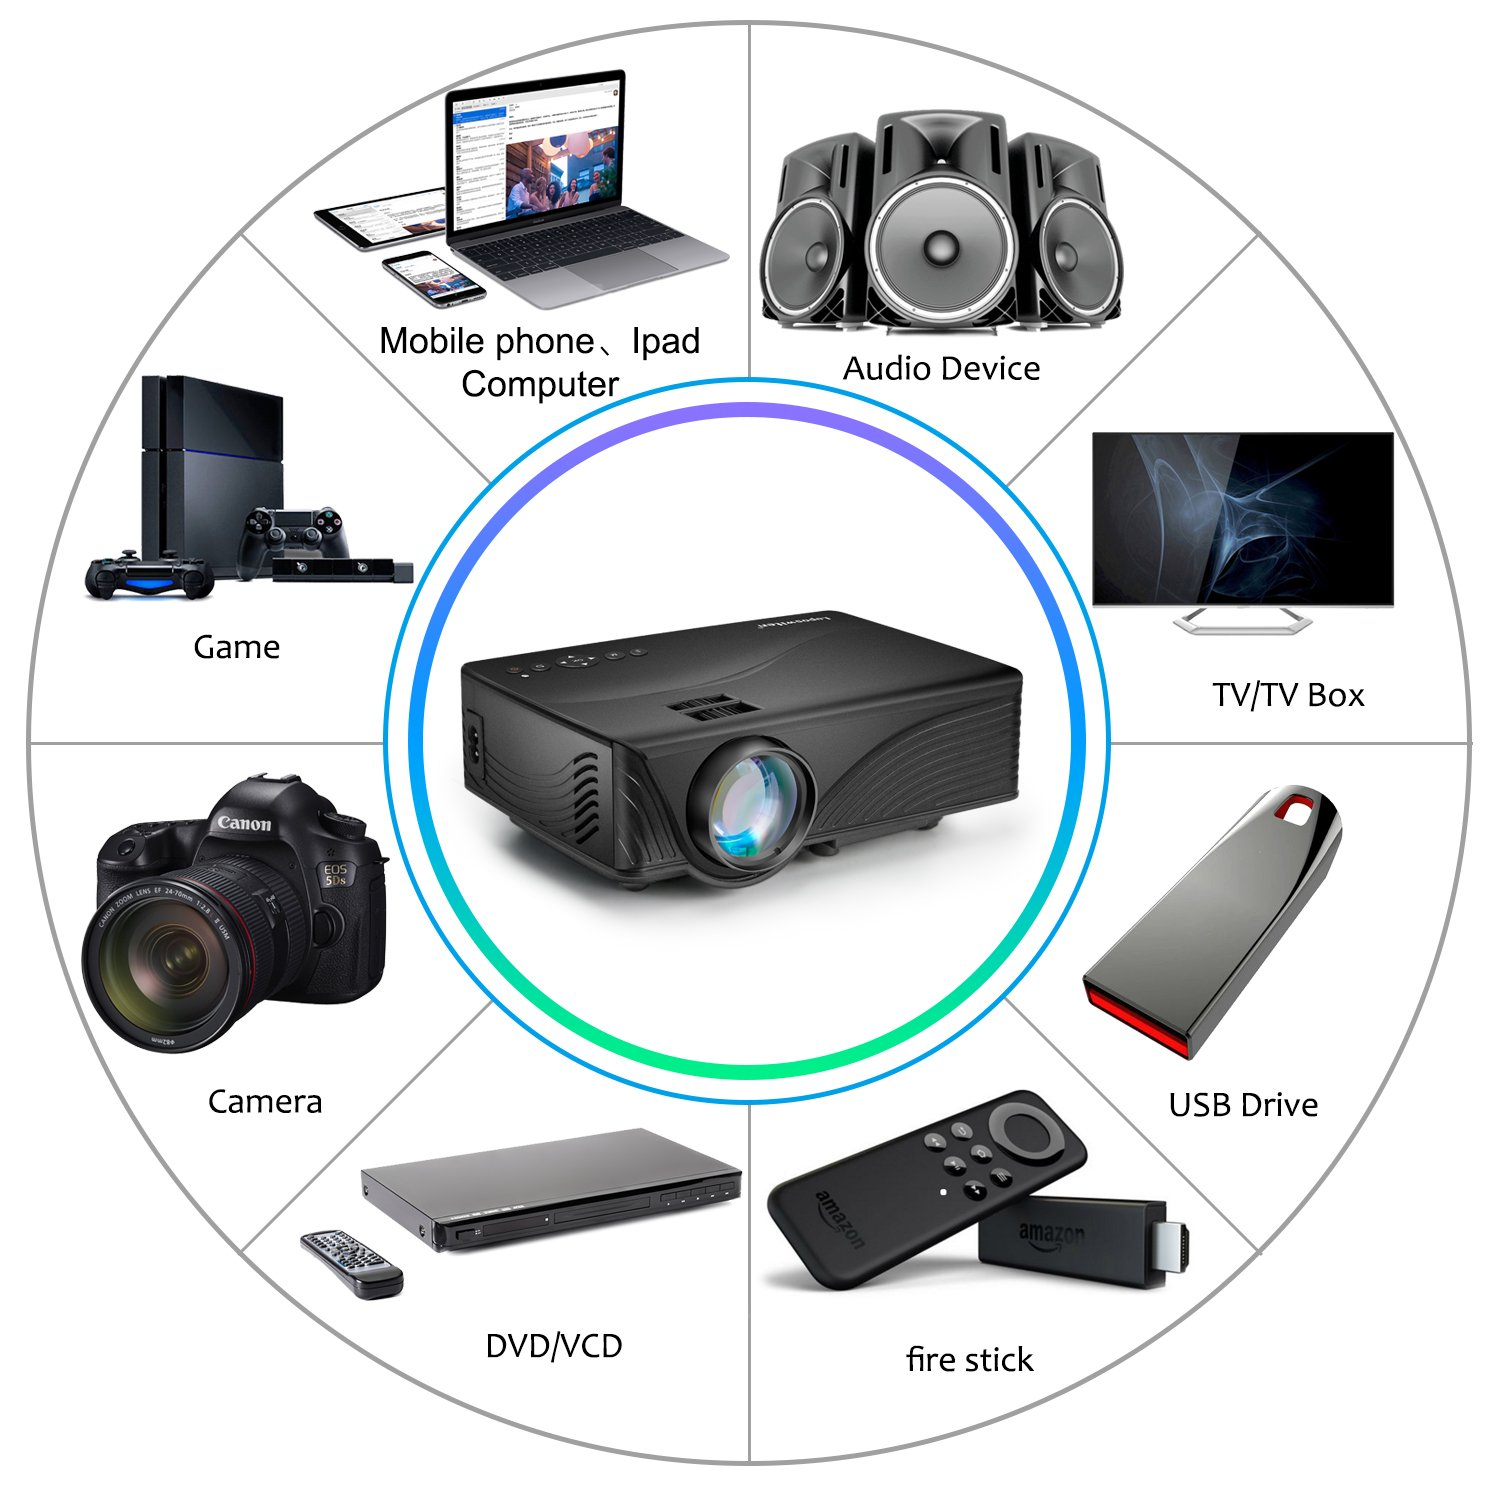 Portable Video Projector 2000 Lumen 1080P 170'' Display 50000 Hour HD LED  Mini Projector Support HDMI USB AV Phone ipad Laptop TV Computer DVD SD for